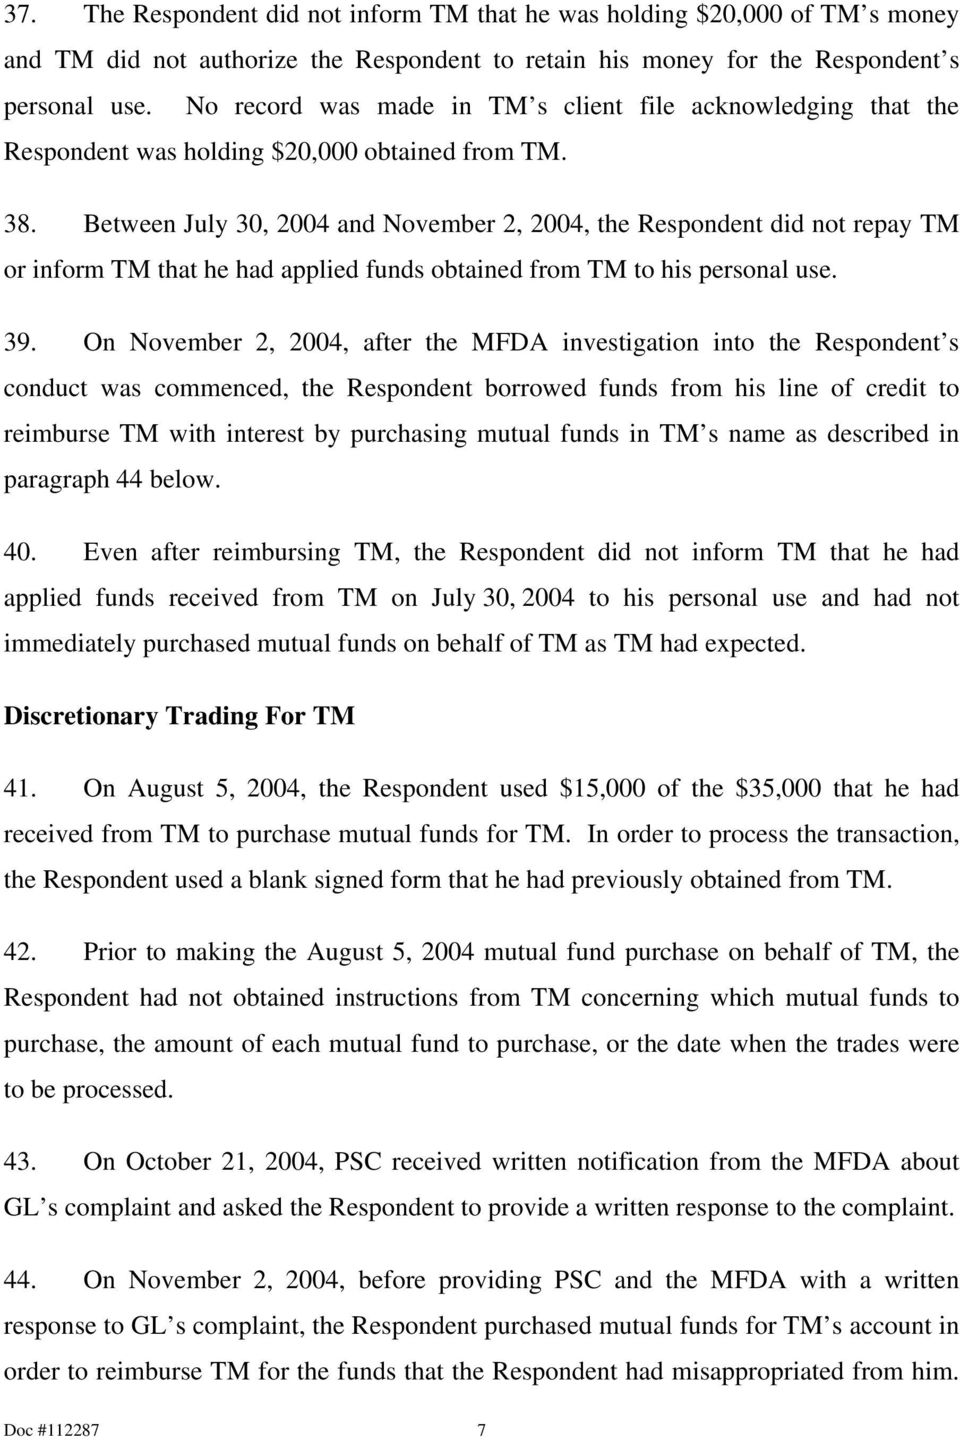 Between July 30, 2004 and November 2, 2004, the Respondent did not repay TM or inform TM that he had applied funds obtained from TM to his personal use. 39.